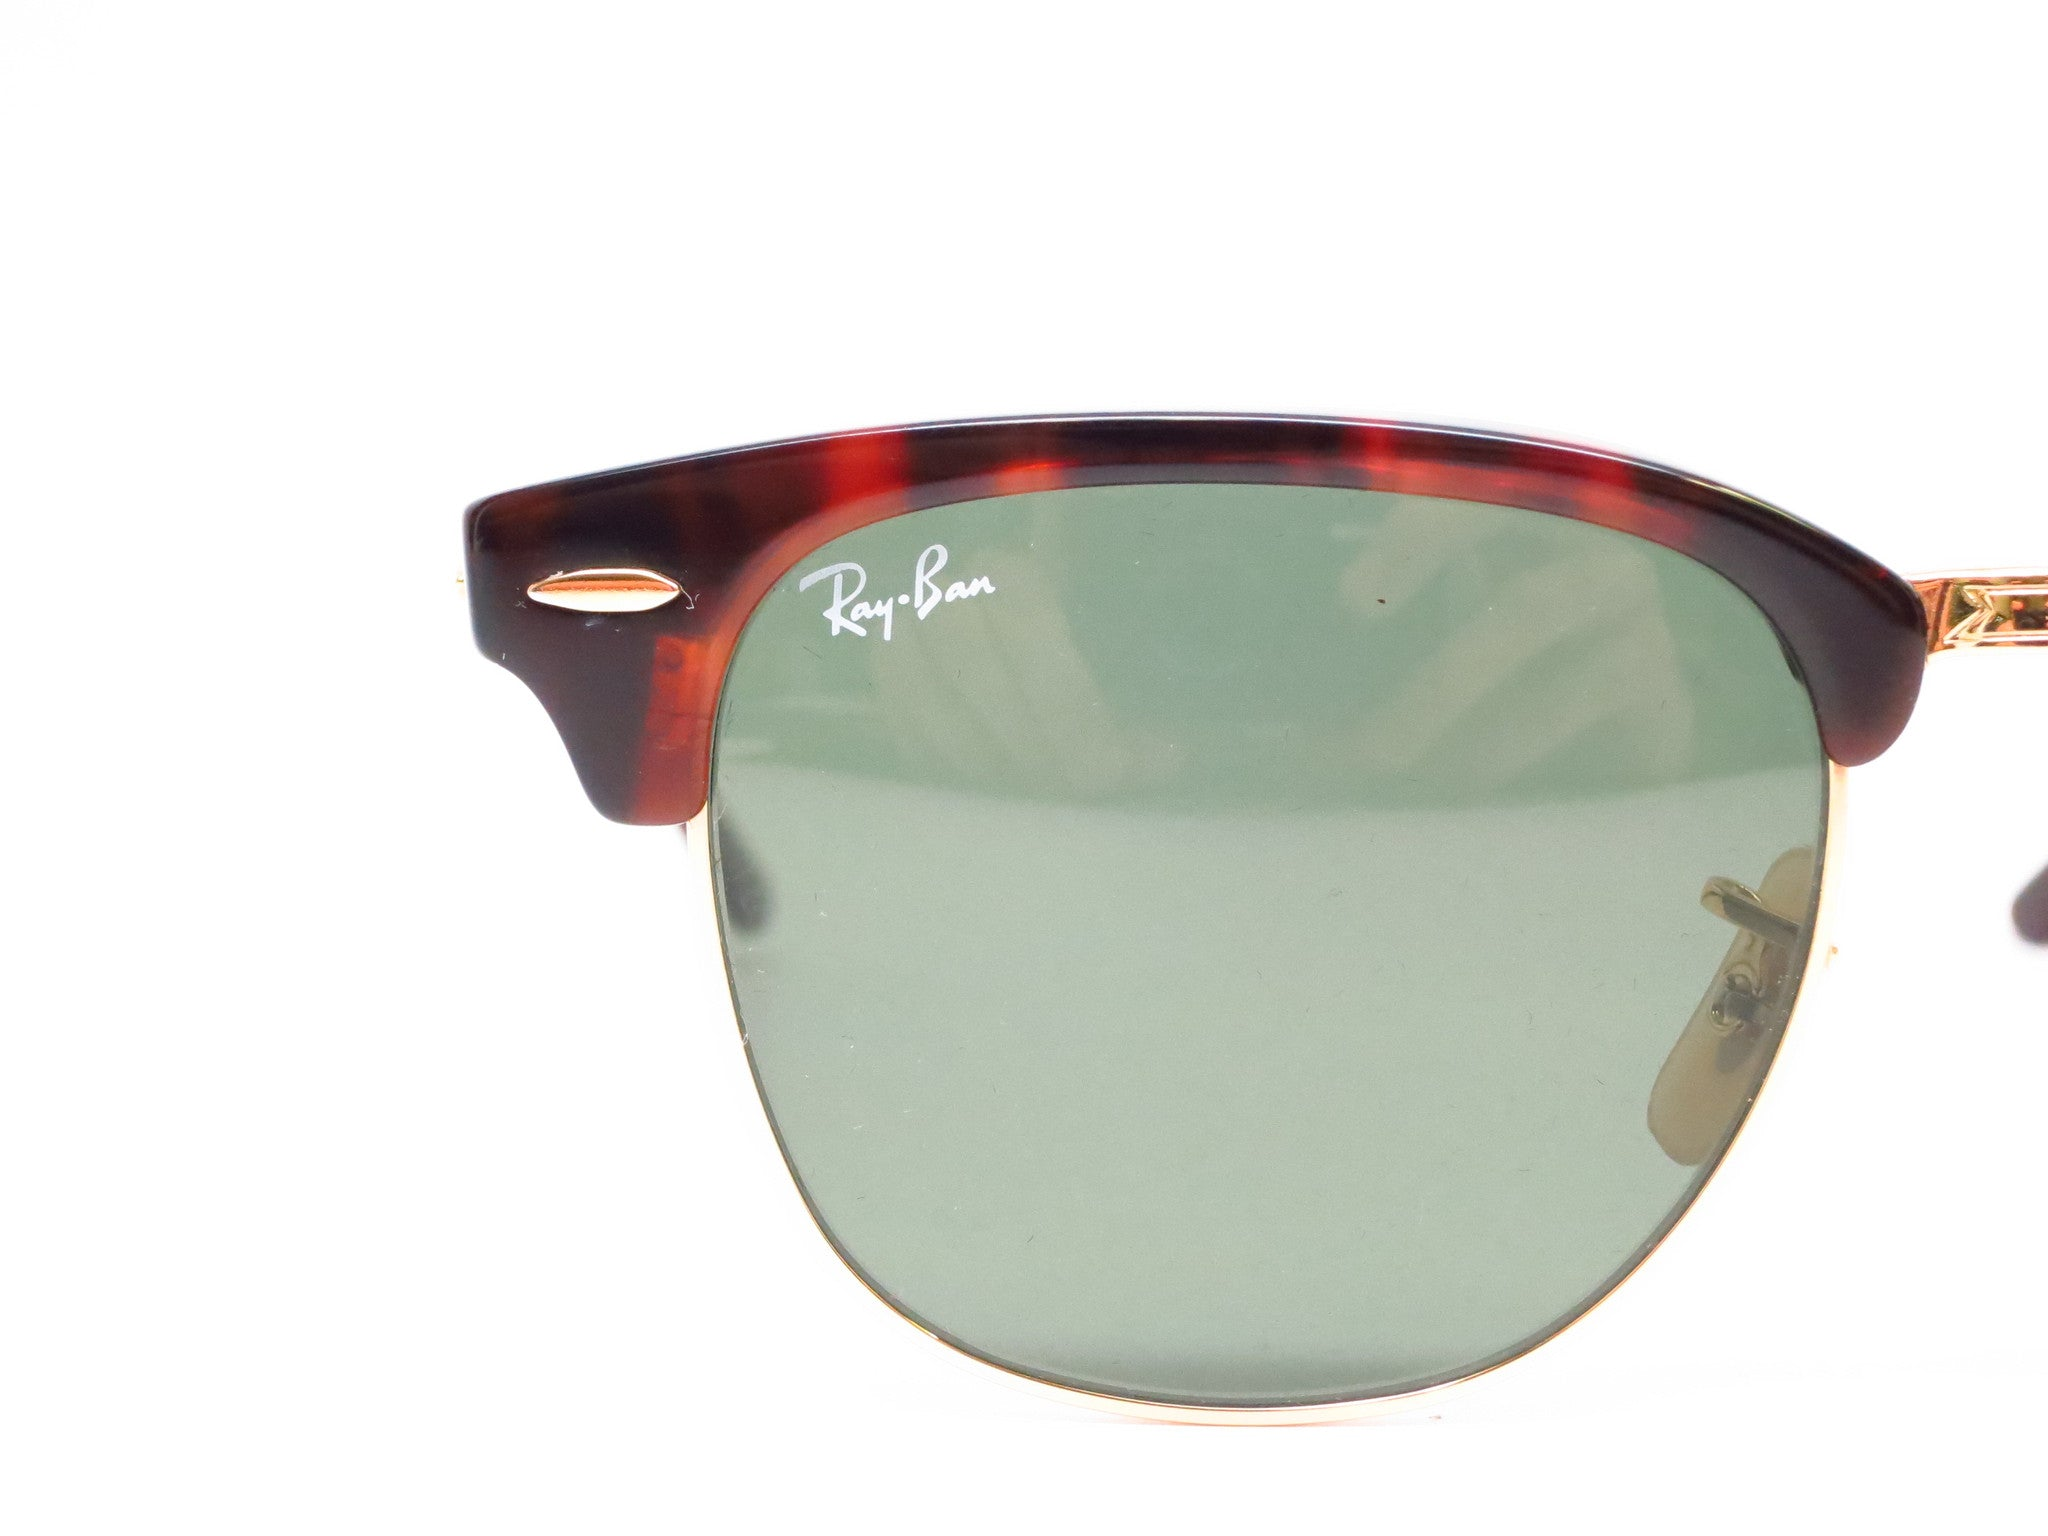 dbcbfa8d617 ... Ray-Ban RB 2176 Clubmaster Folding 990 Red Havana Sunglasses - Eye  Heart Shades ...